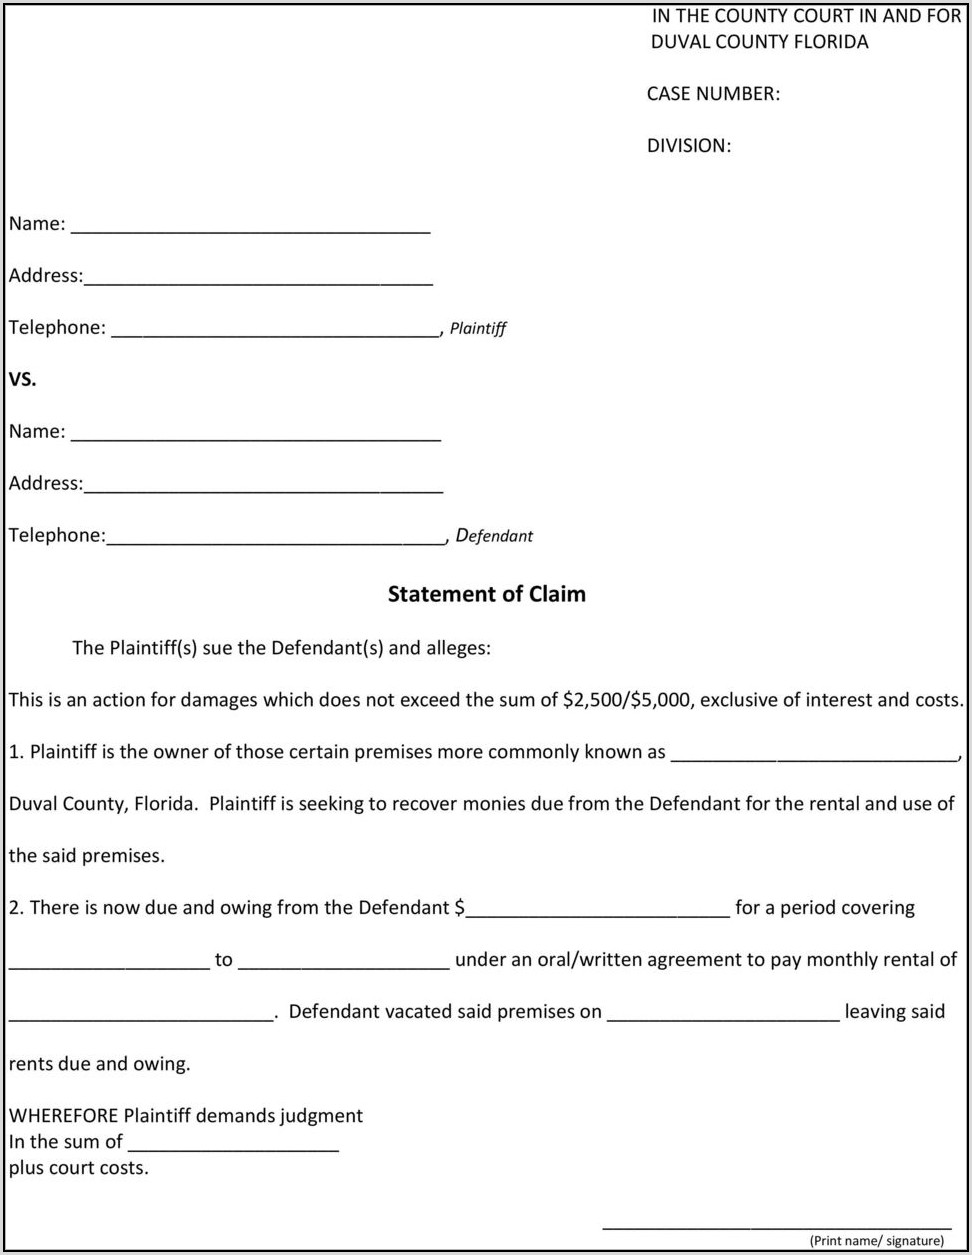 Duval County Divorce Paperwork